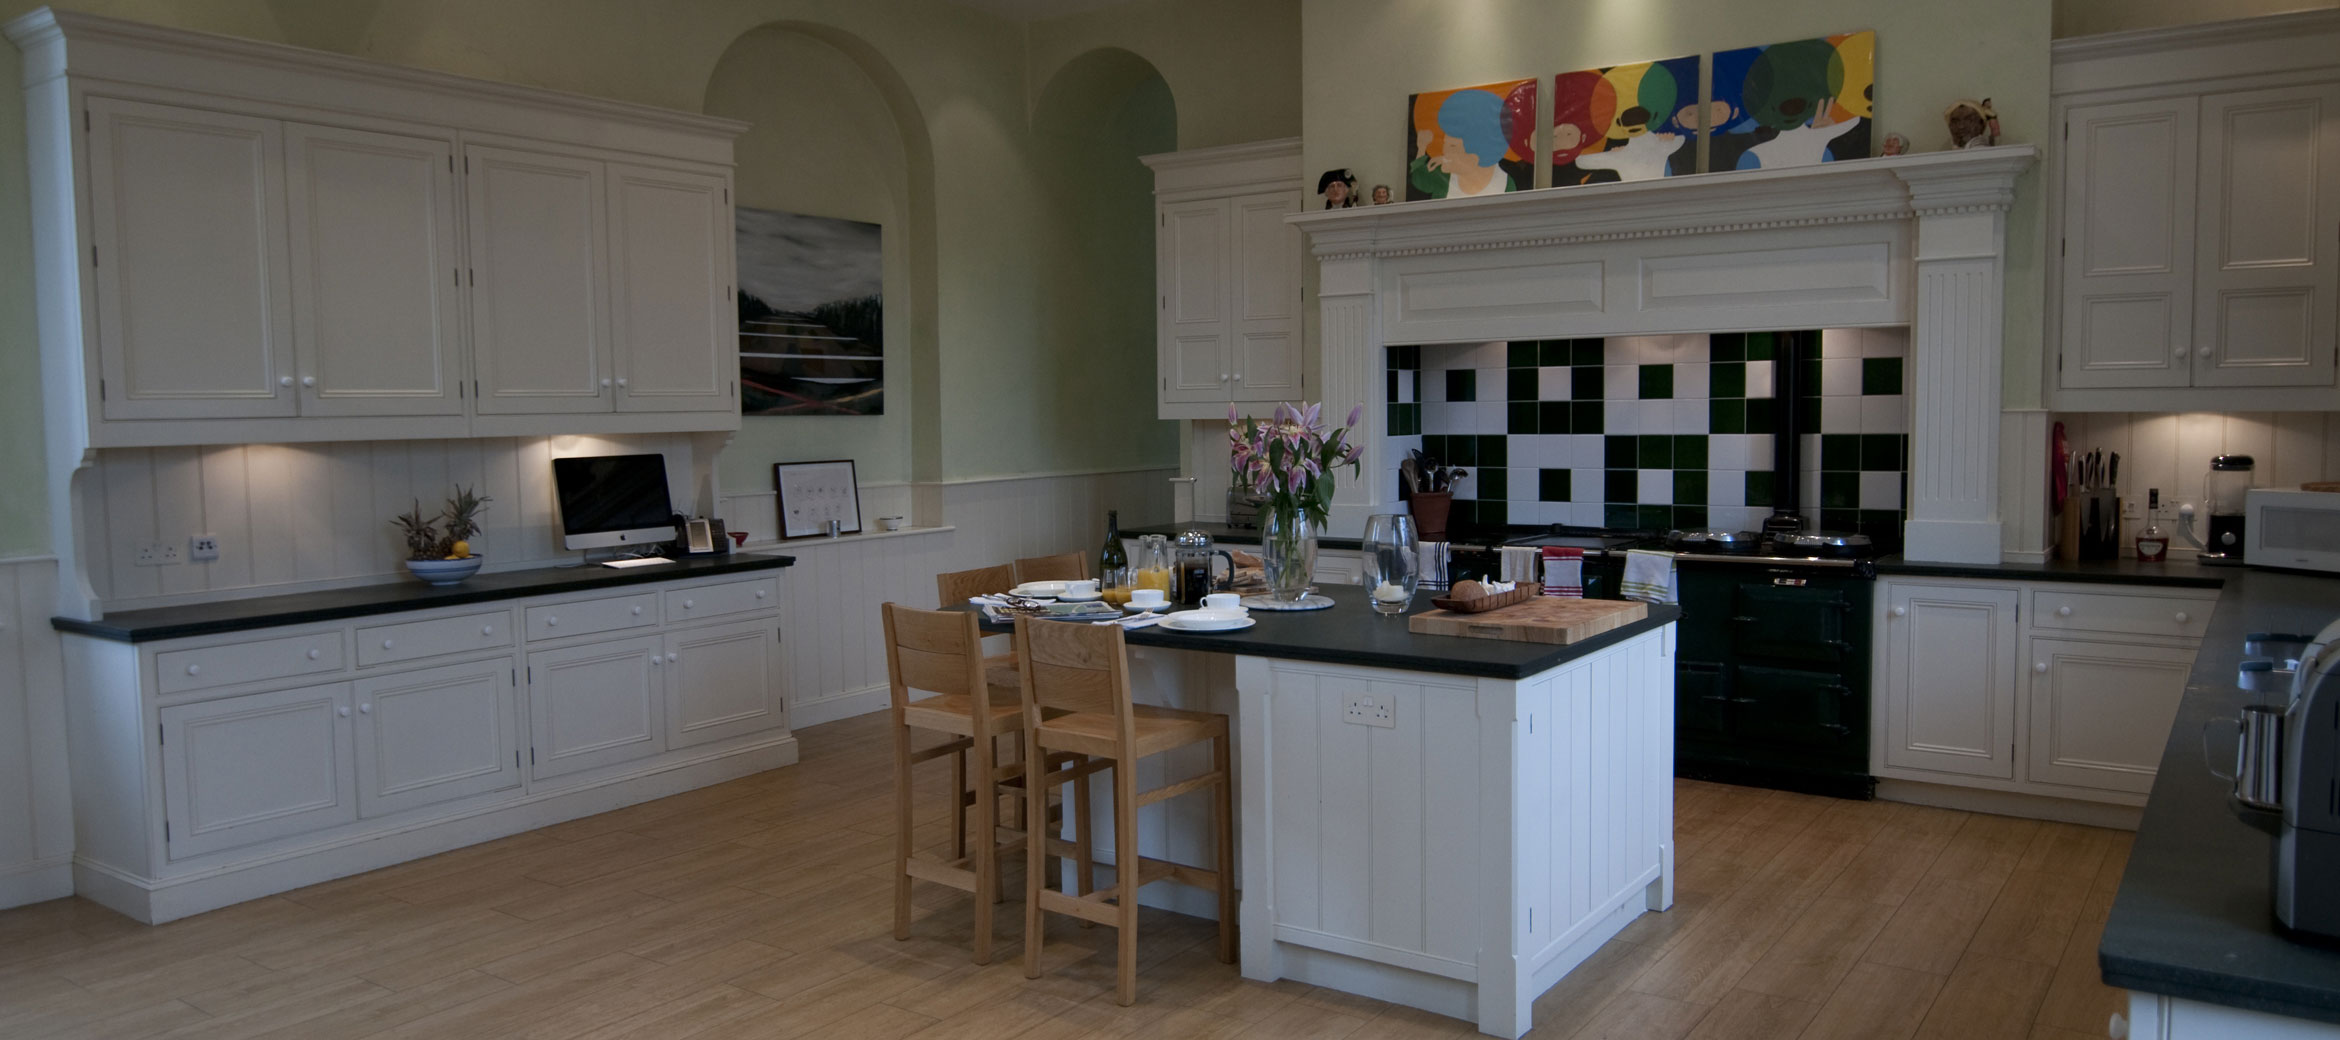 langley-park-cotswold-kitchen-aga